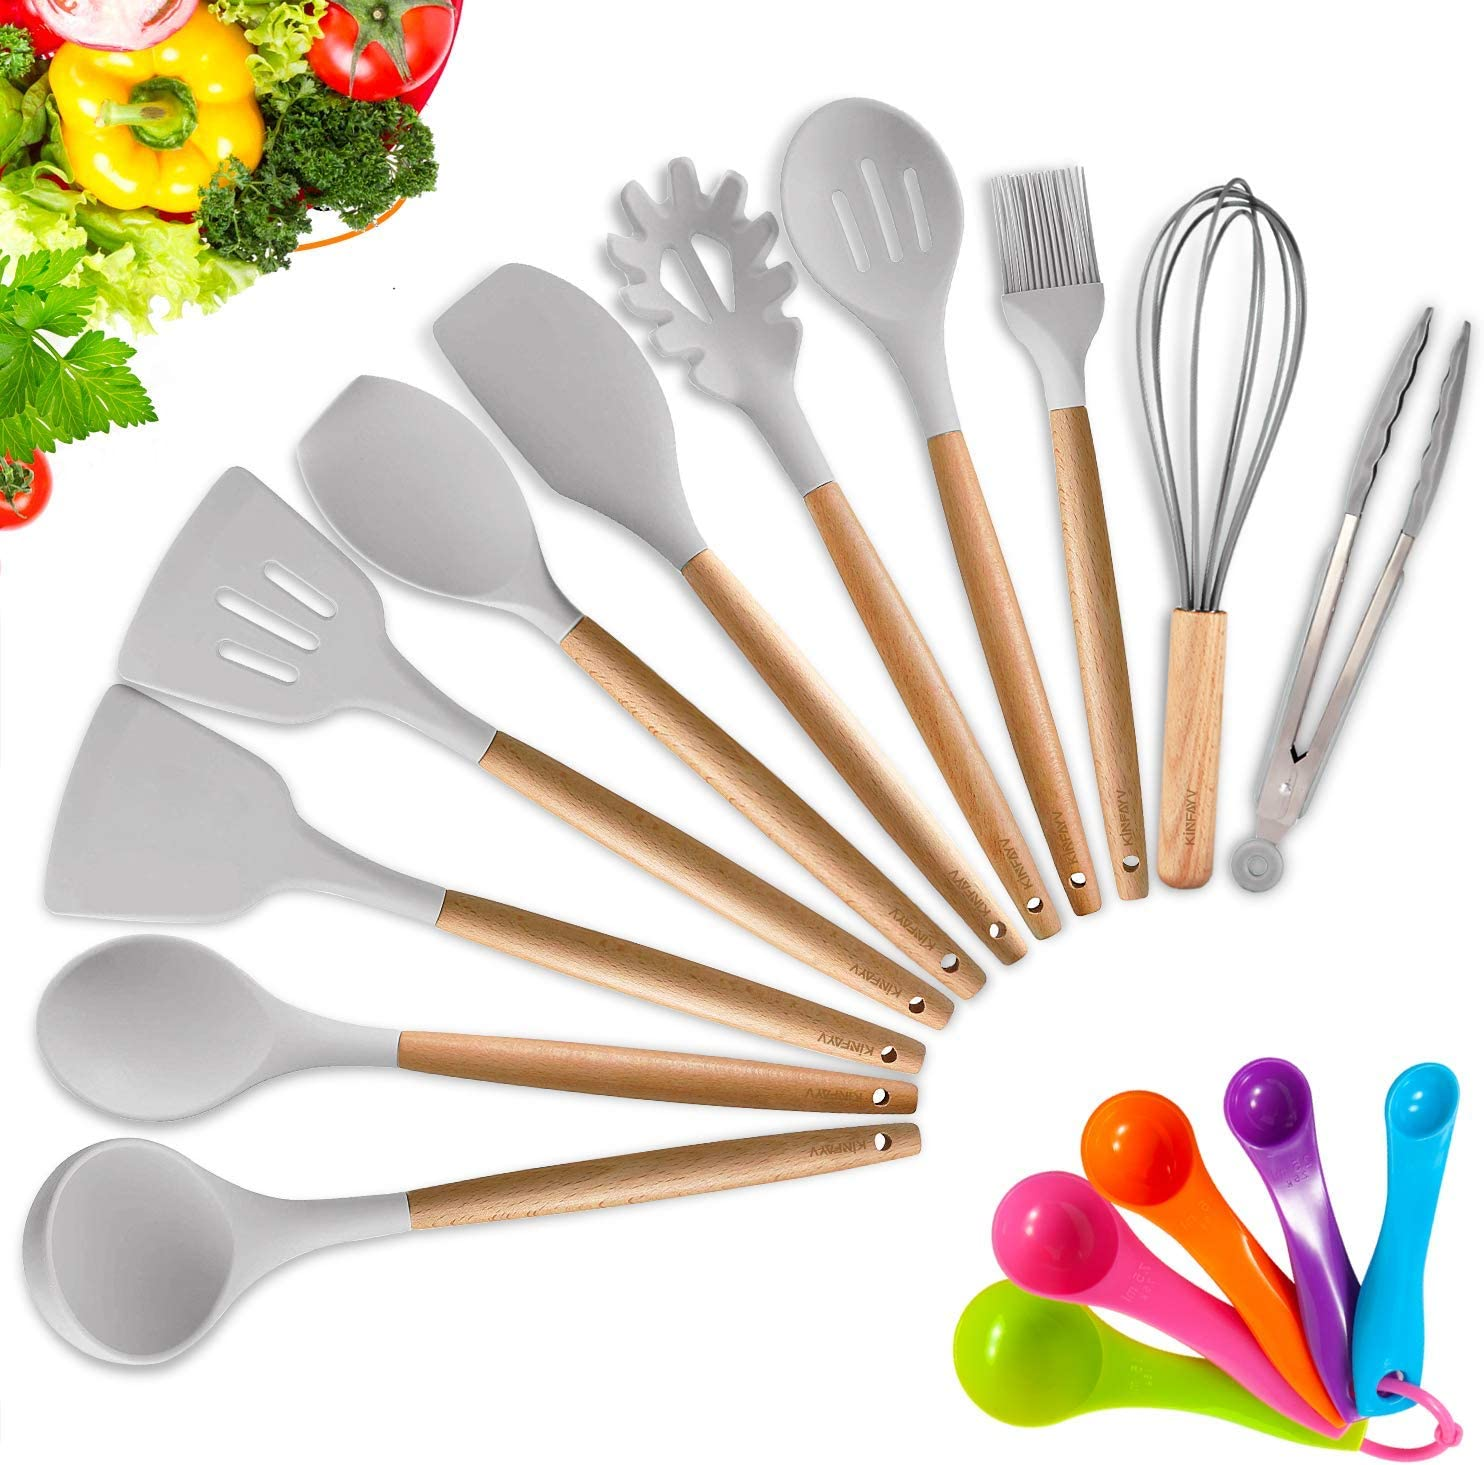 KINFAYV Silicone Cooking Utensil Kitchen Utensil Set,16 PCS Acacia Wooden